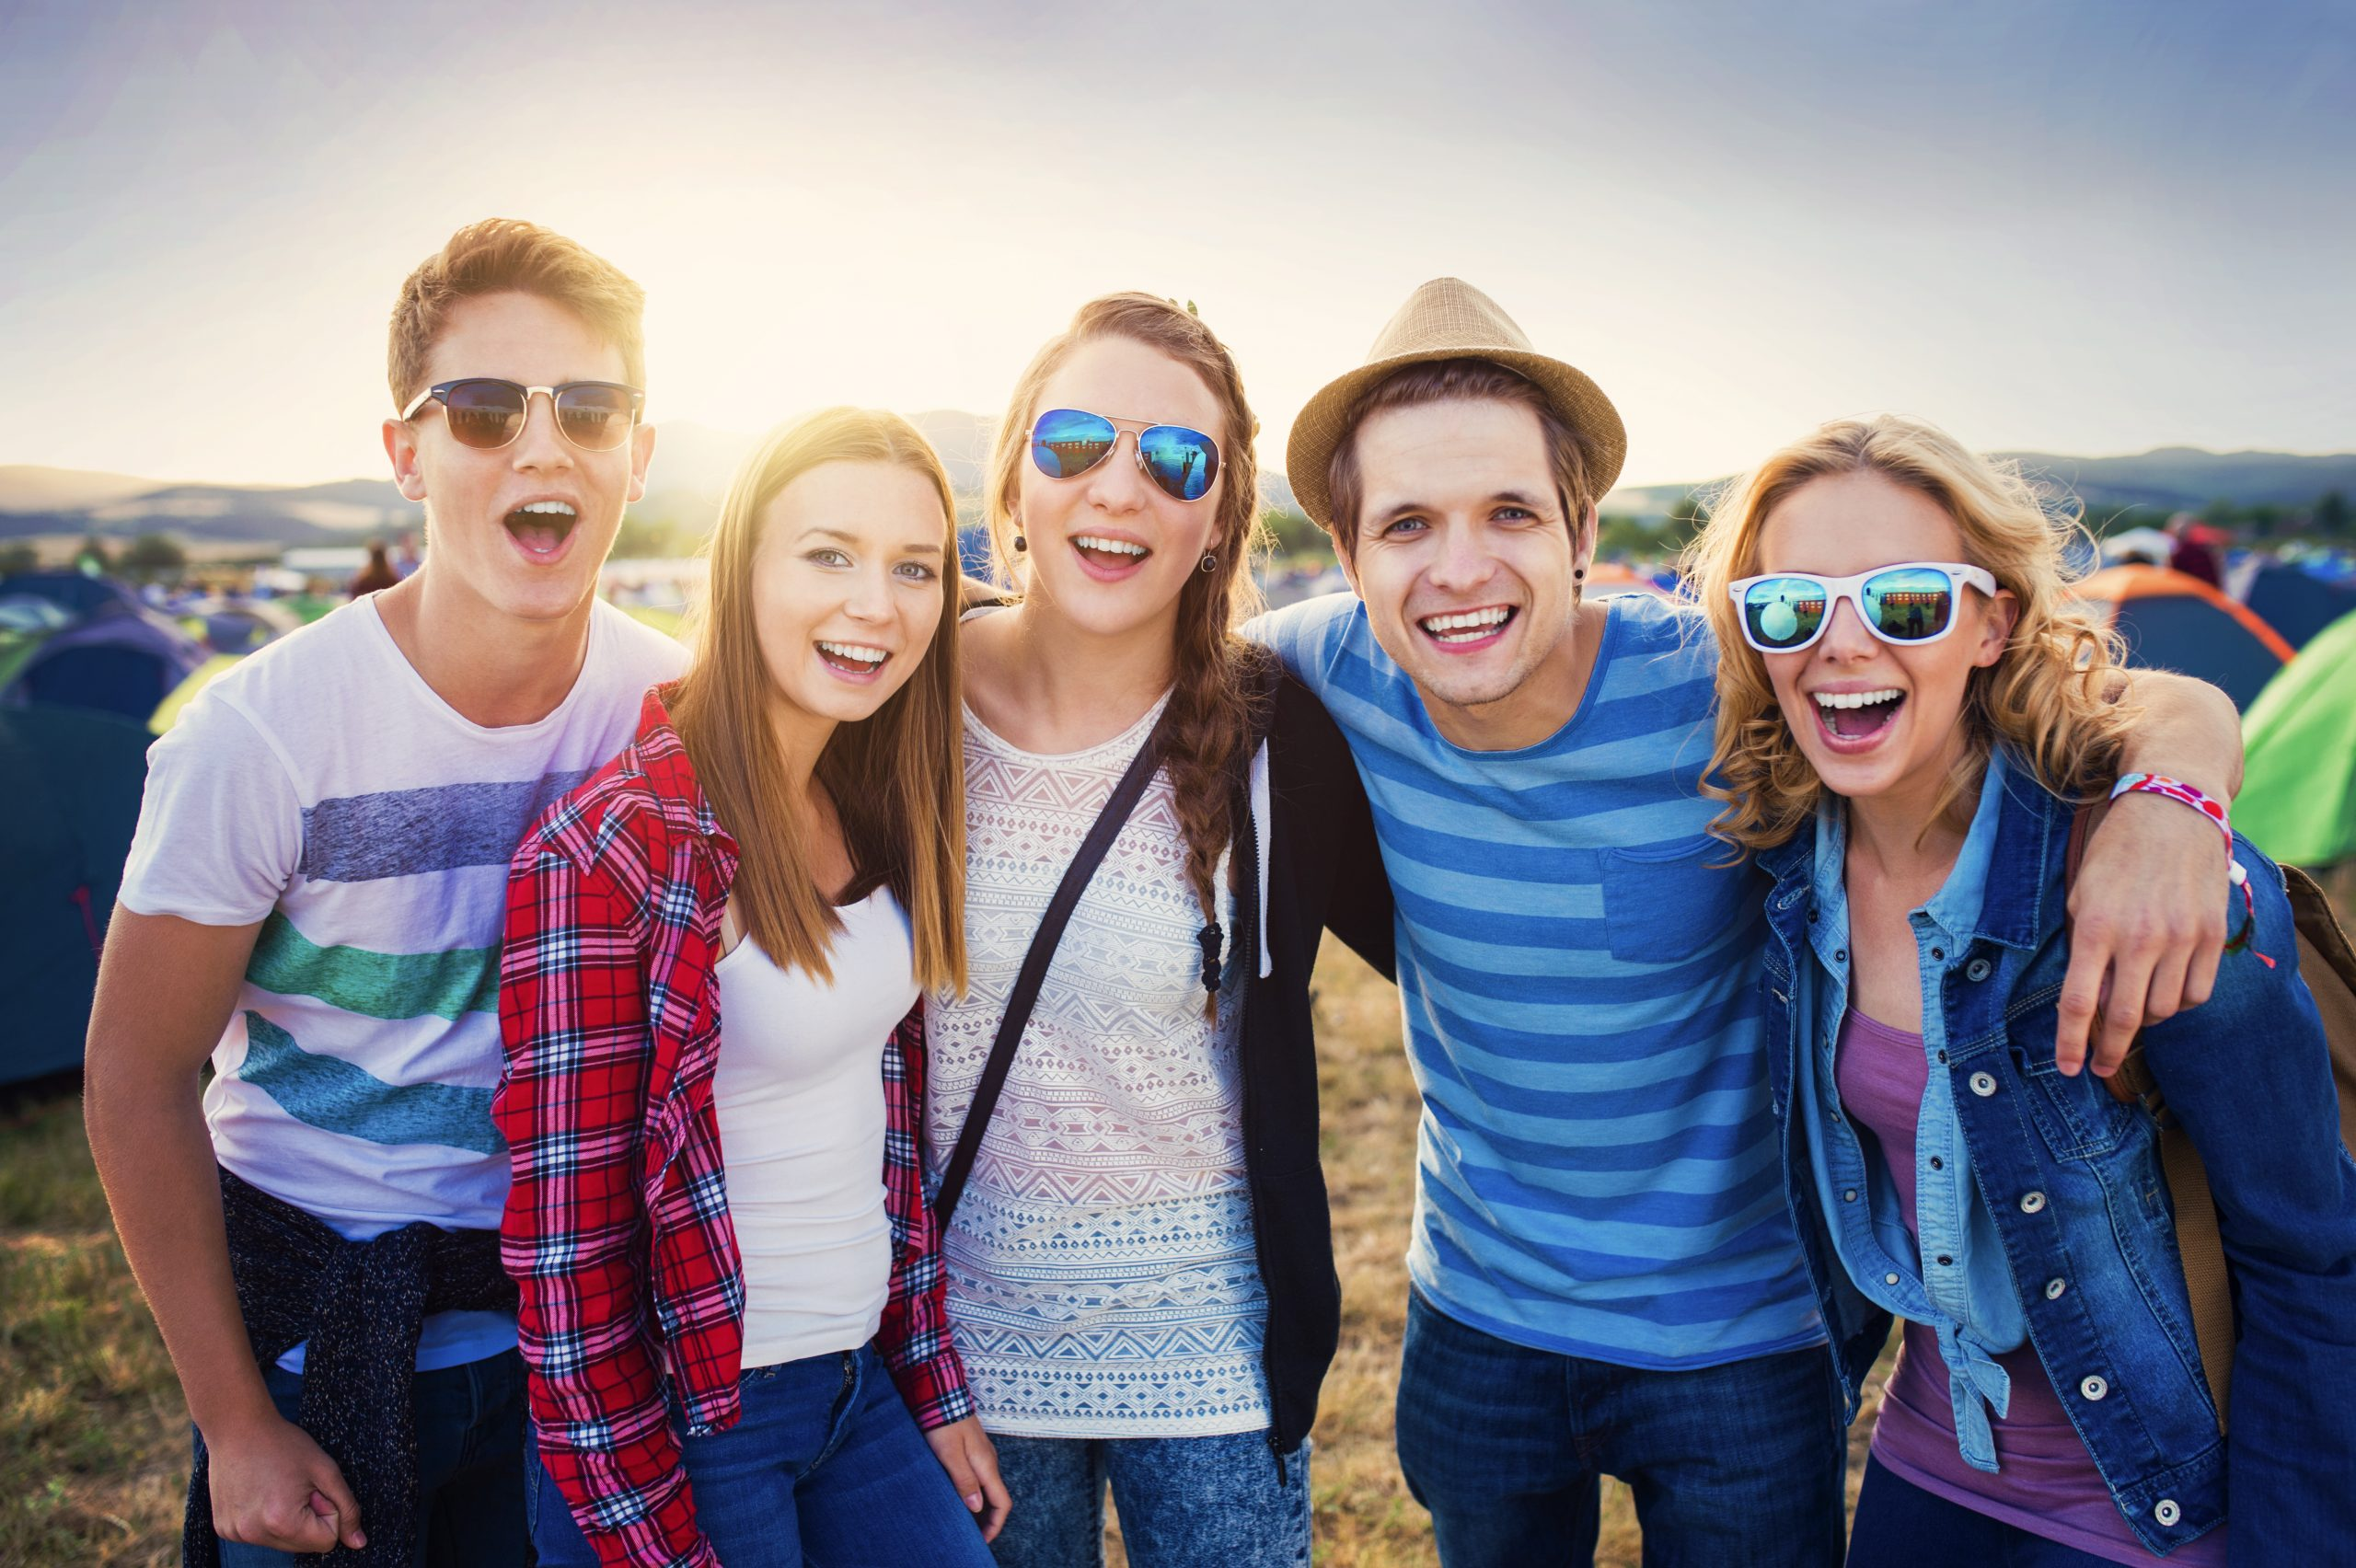 Teenagers should be taught about saving and investing